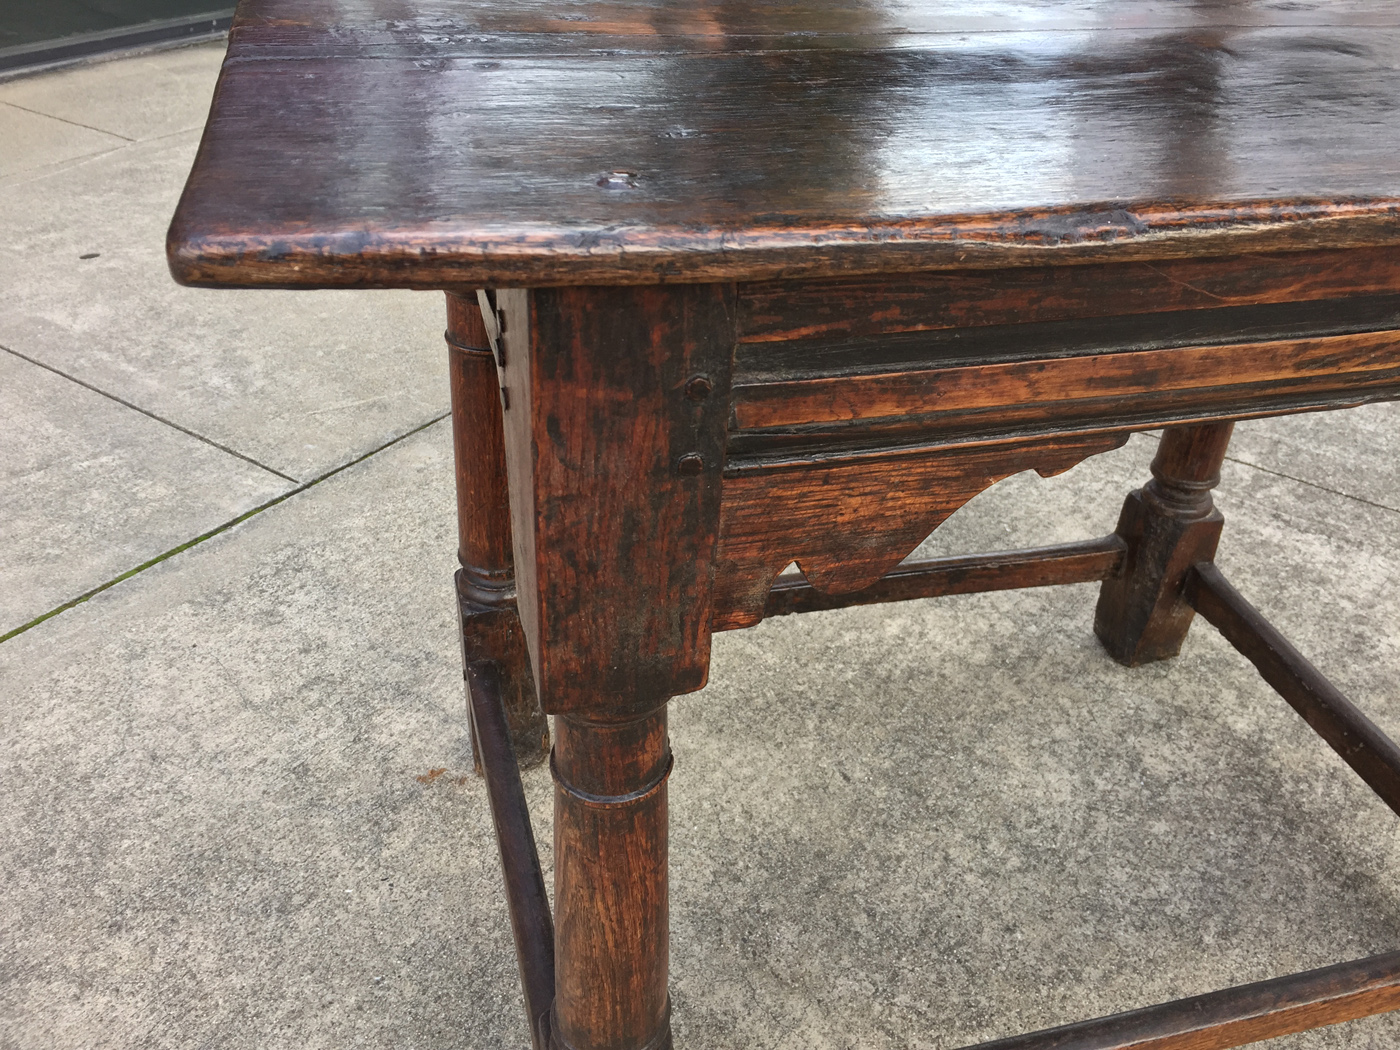 Antique English Side Table -  garden court antiques san francisco an 18th century english oak side table with carved